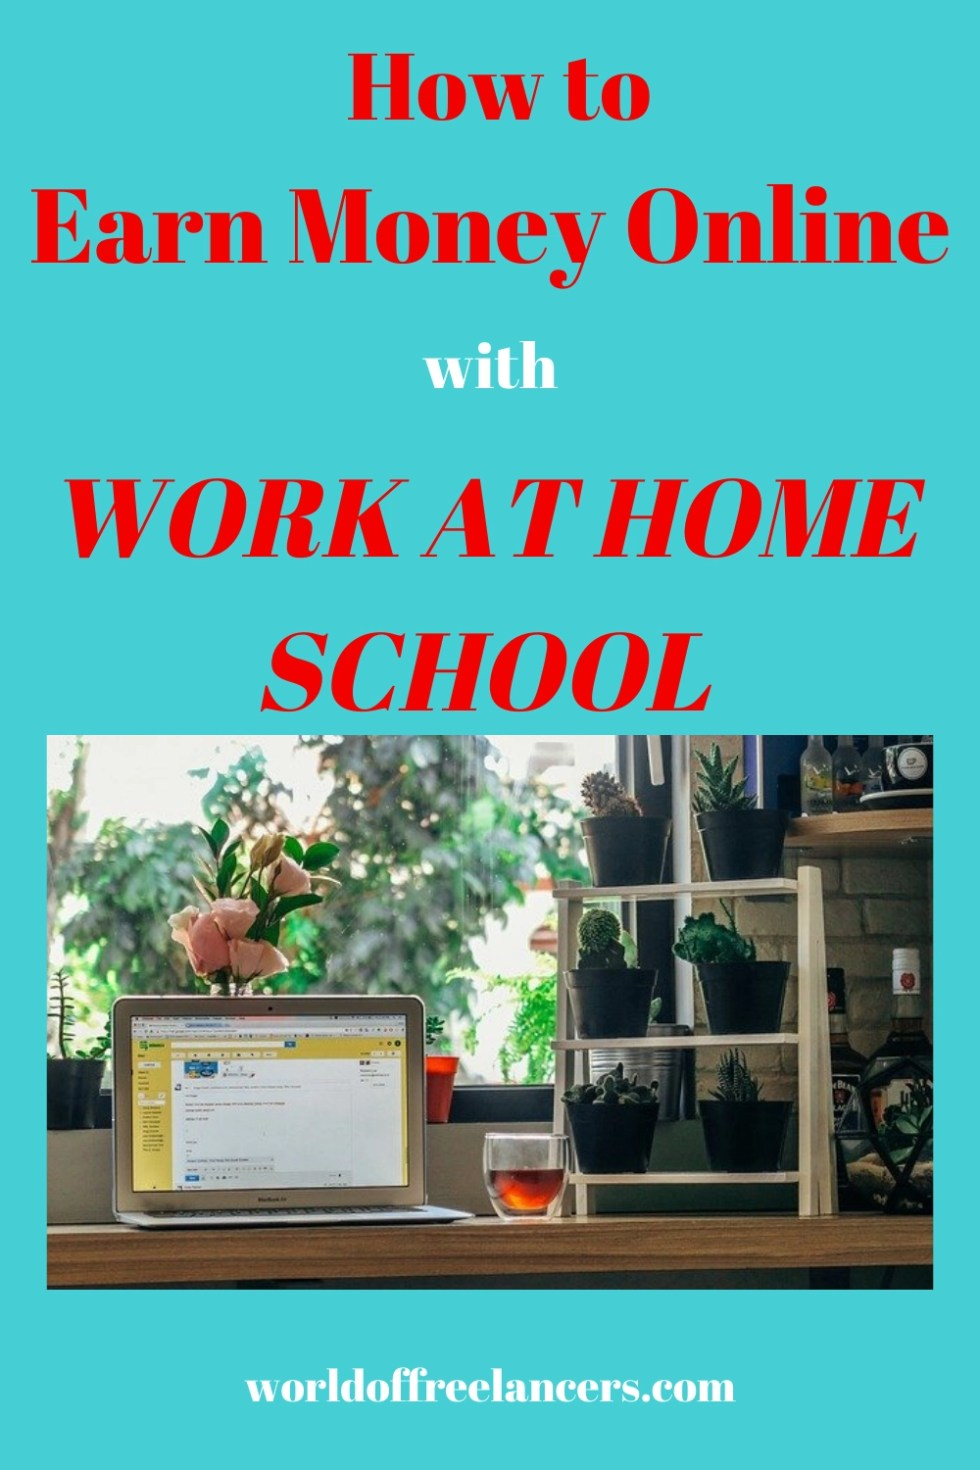 How to Earn Money Online with Work at Home School